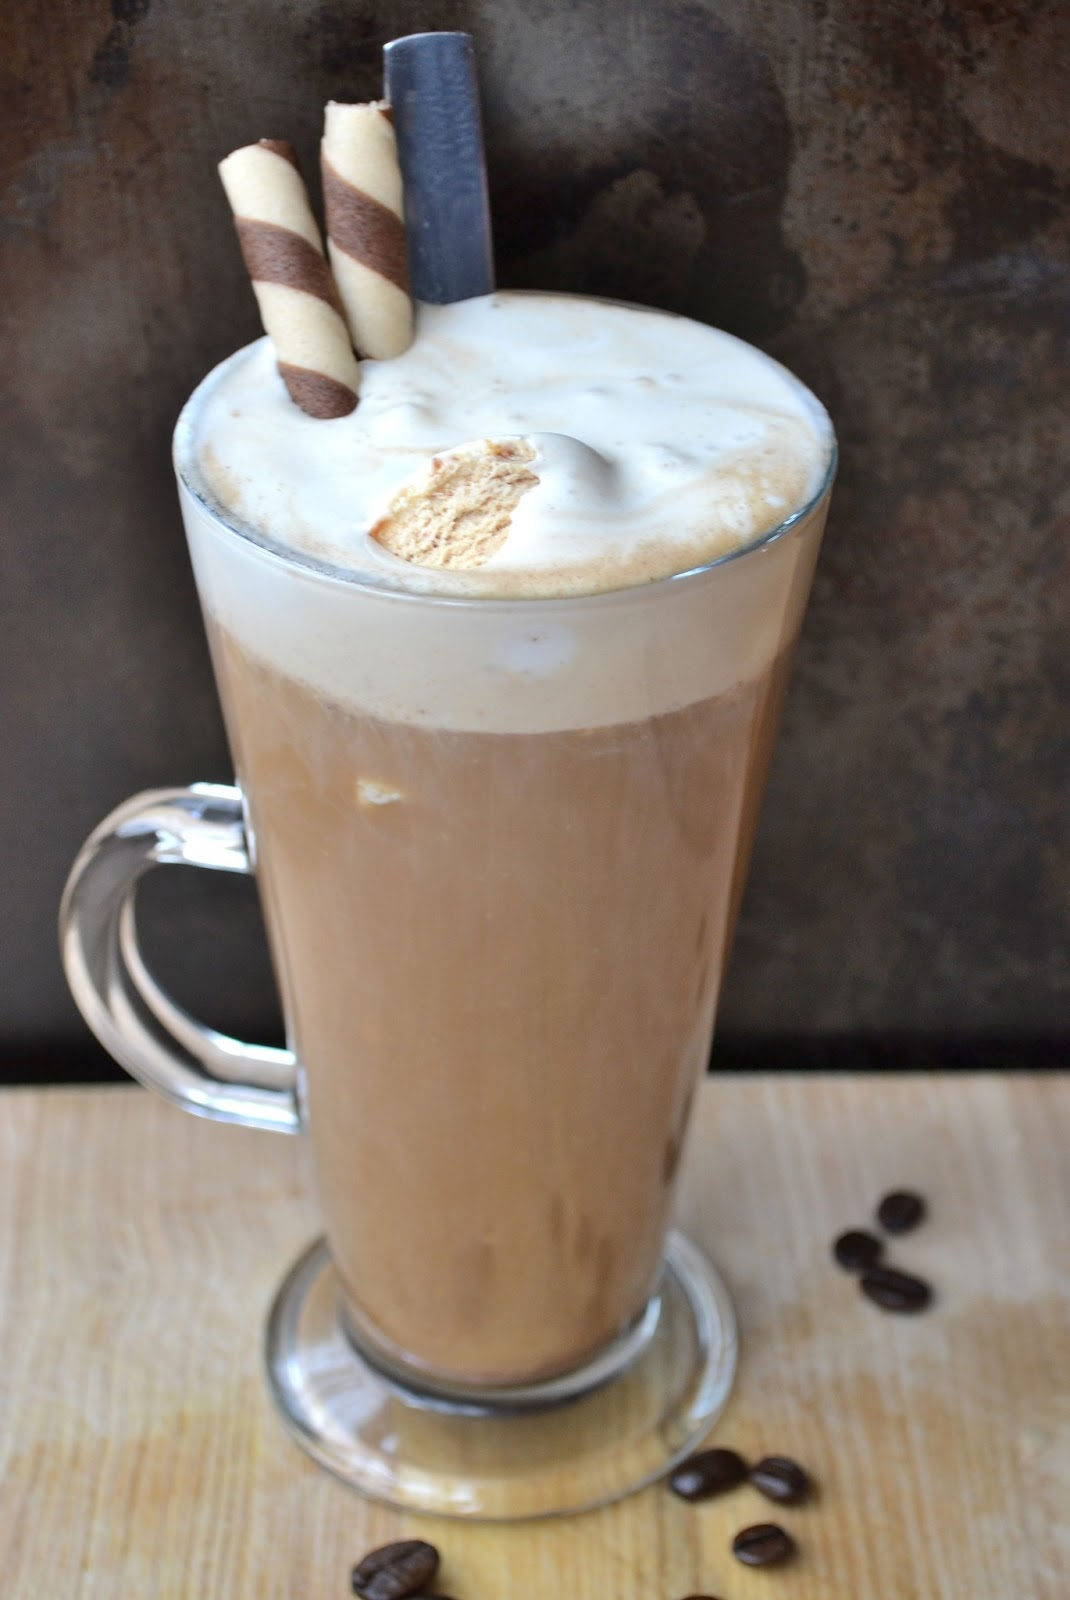 how to make cream float on coffee